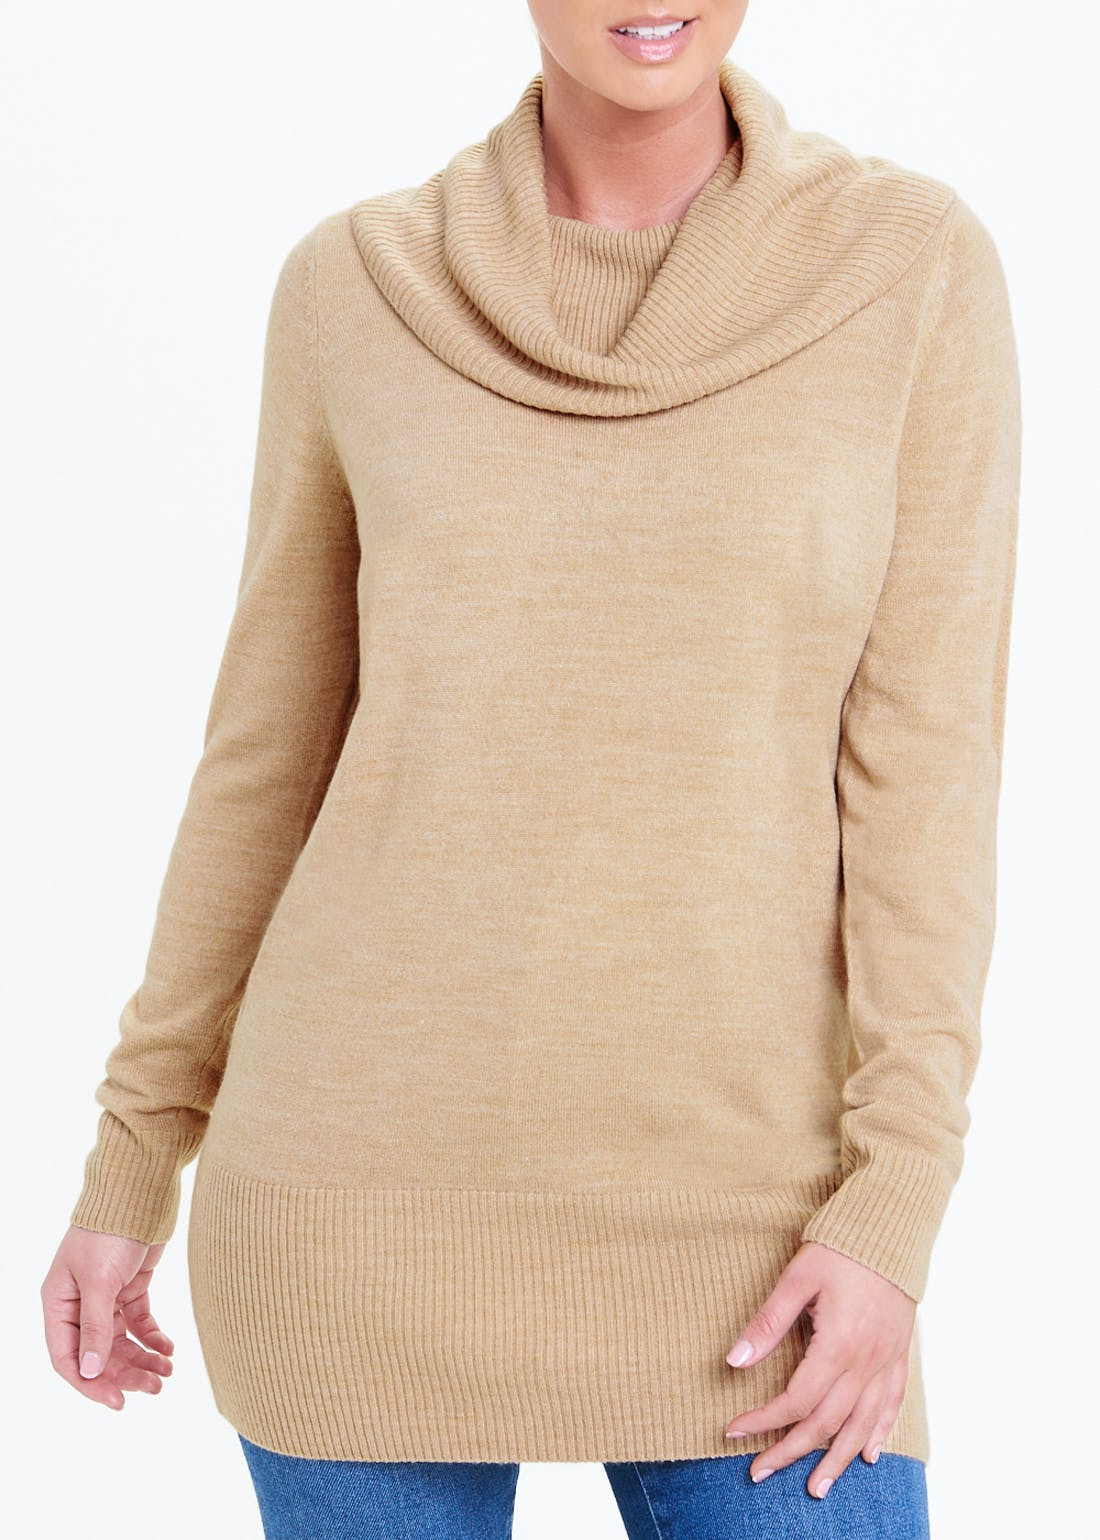 Super Soft Cowl Neck Tunic Jumper